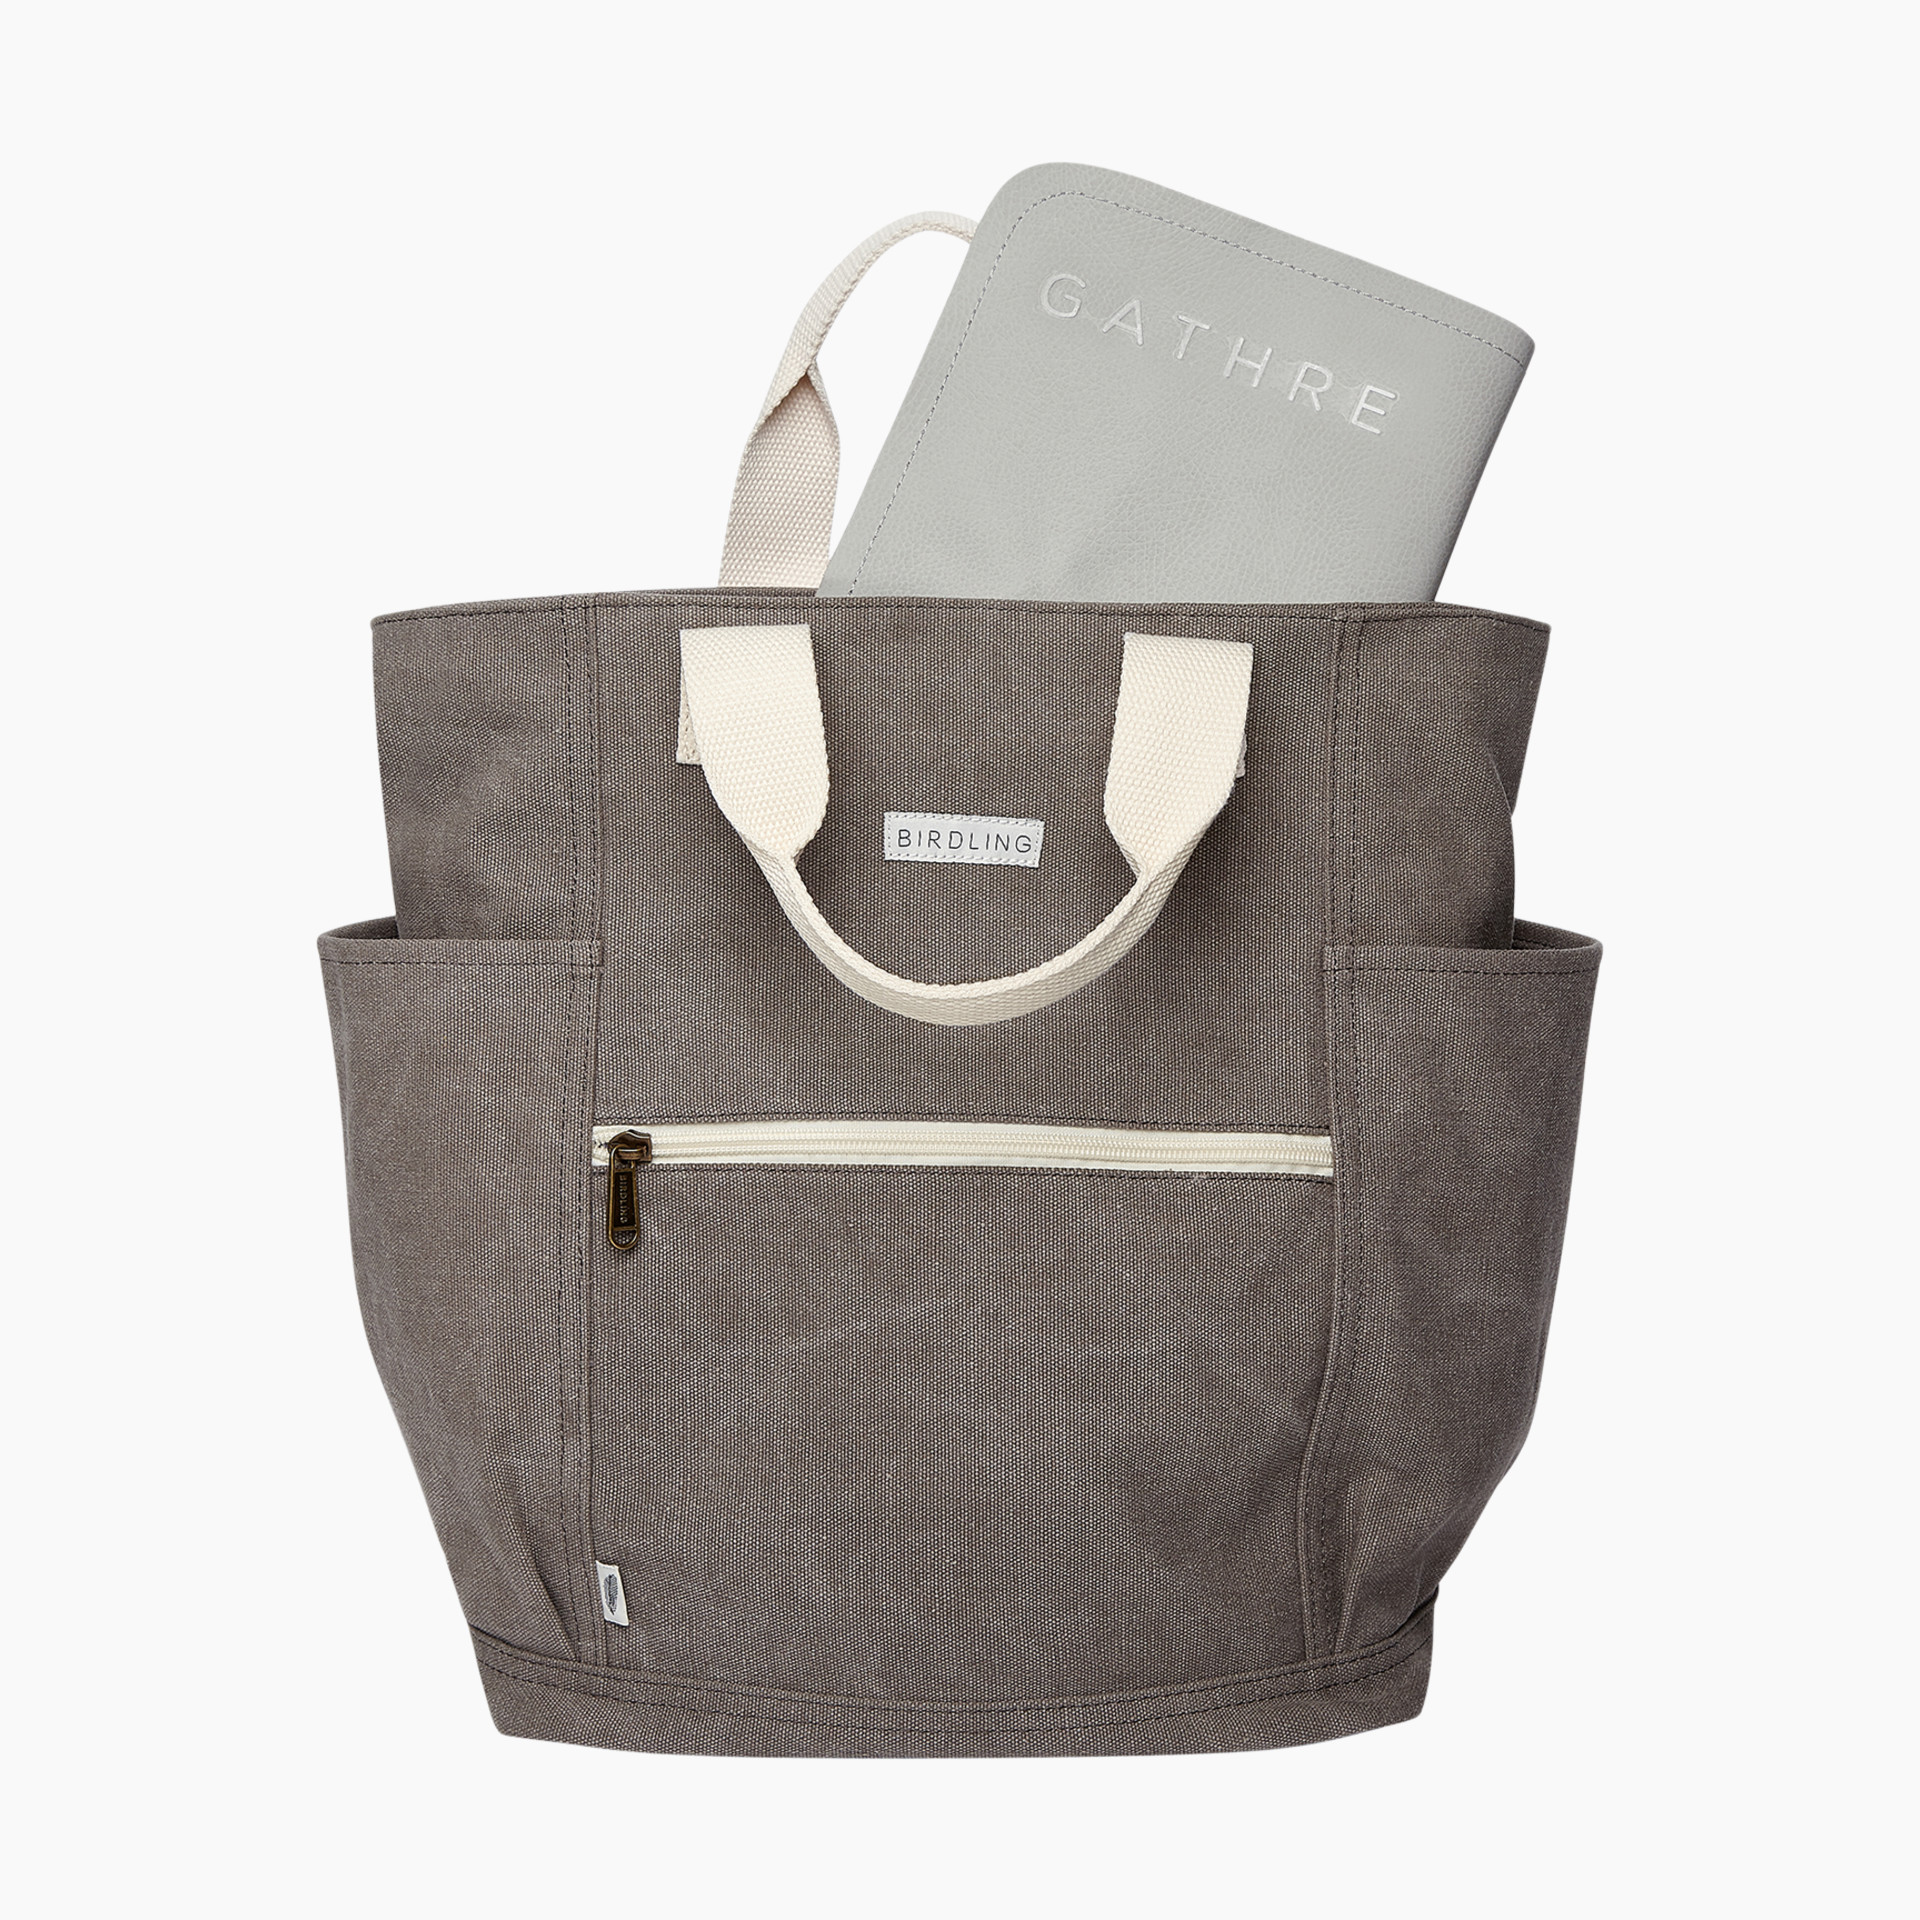 Birdling X Gathre Minimalist Diaper Bag And Changing Pad Washed Grey Pewter